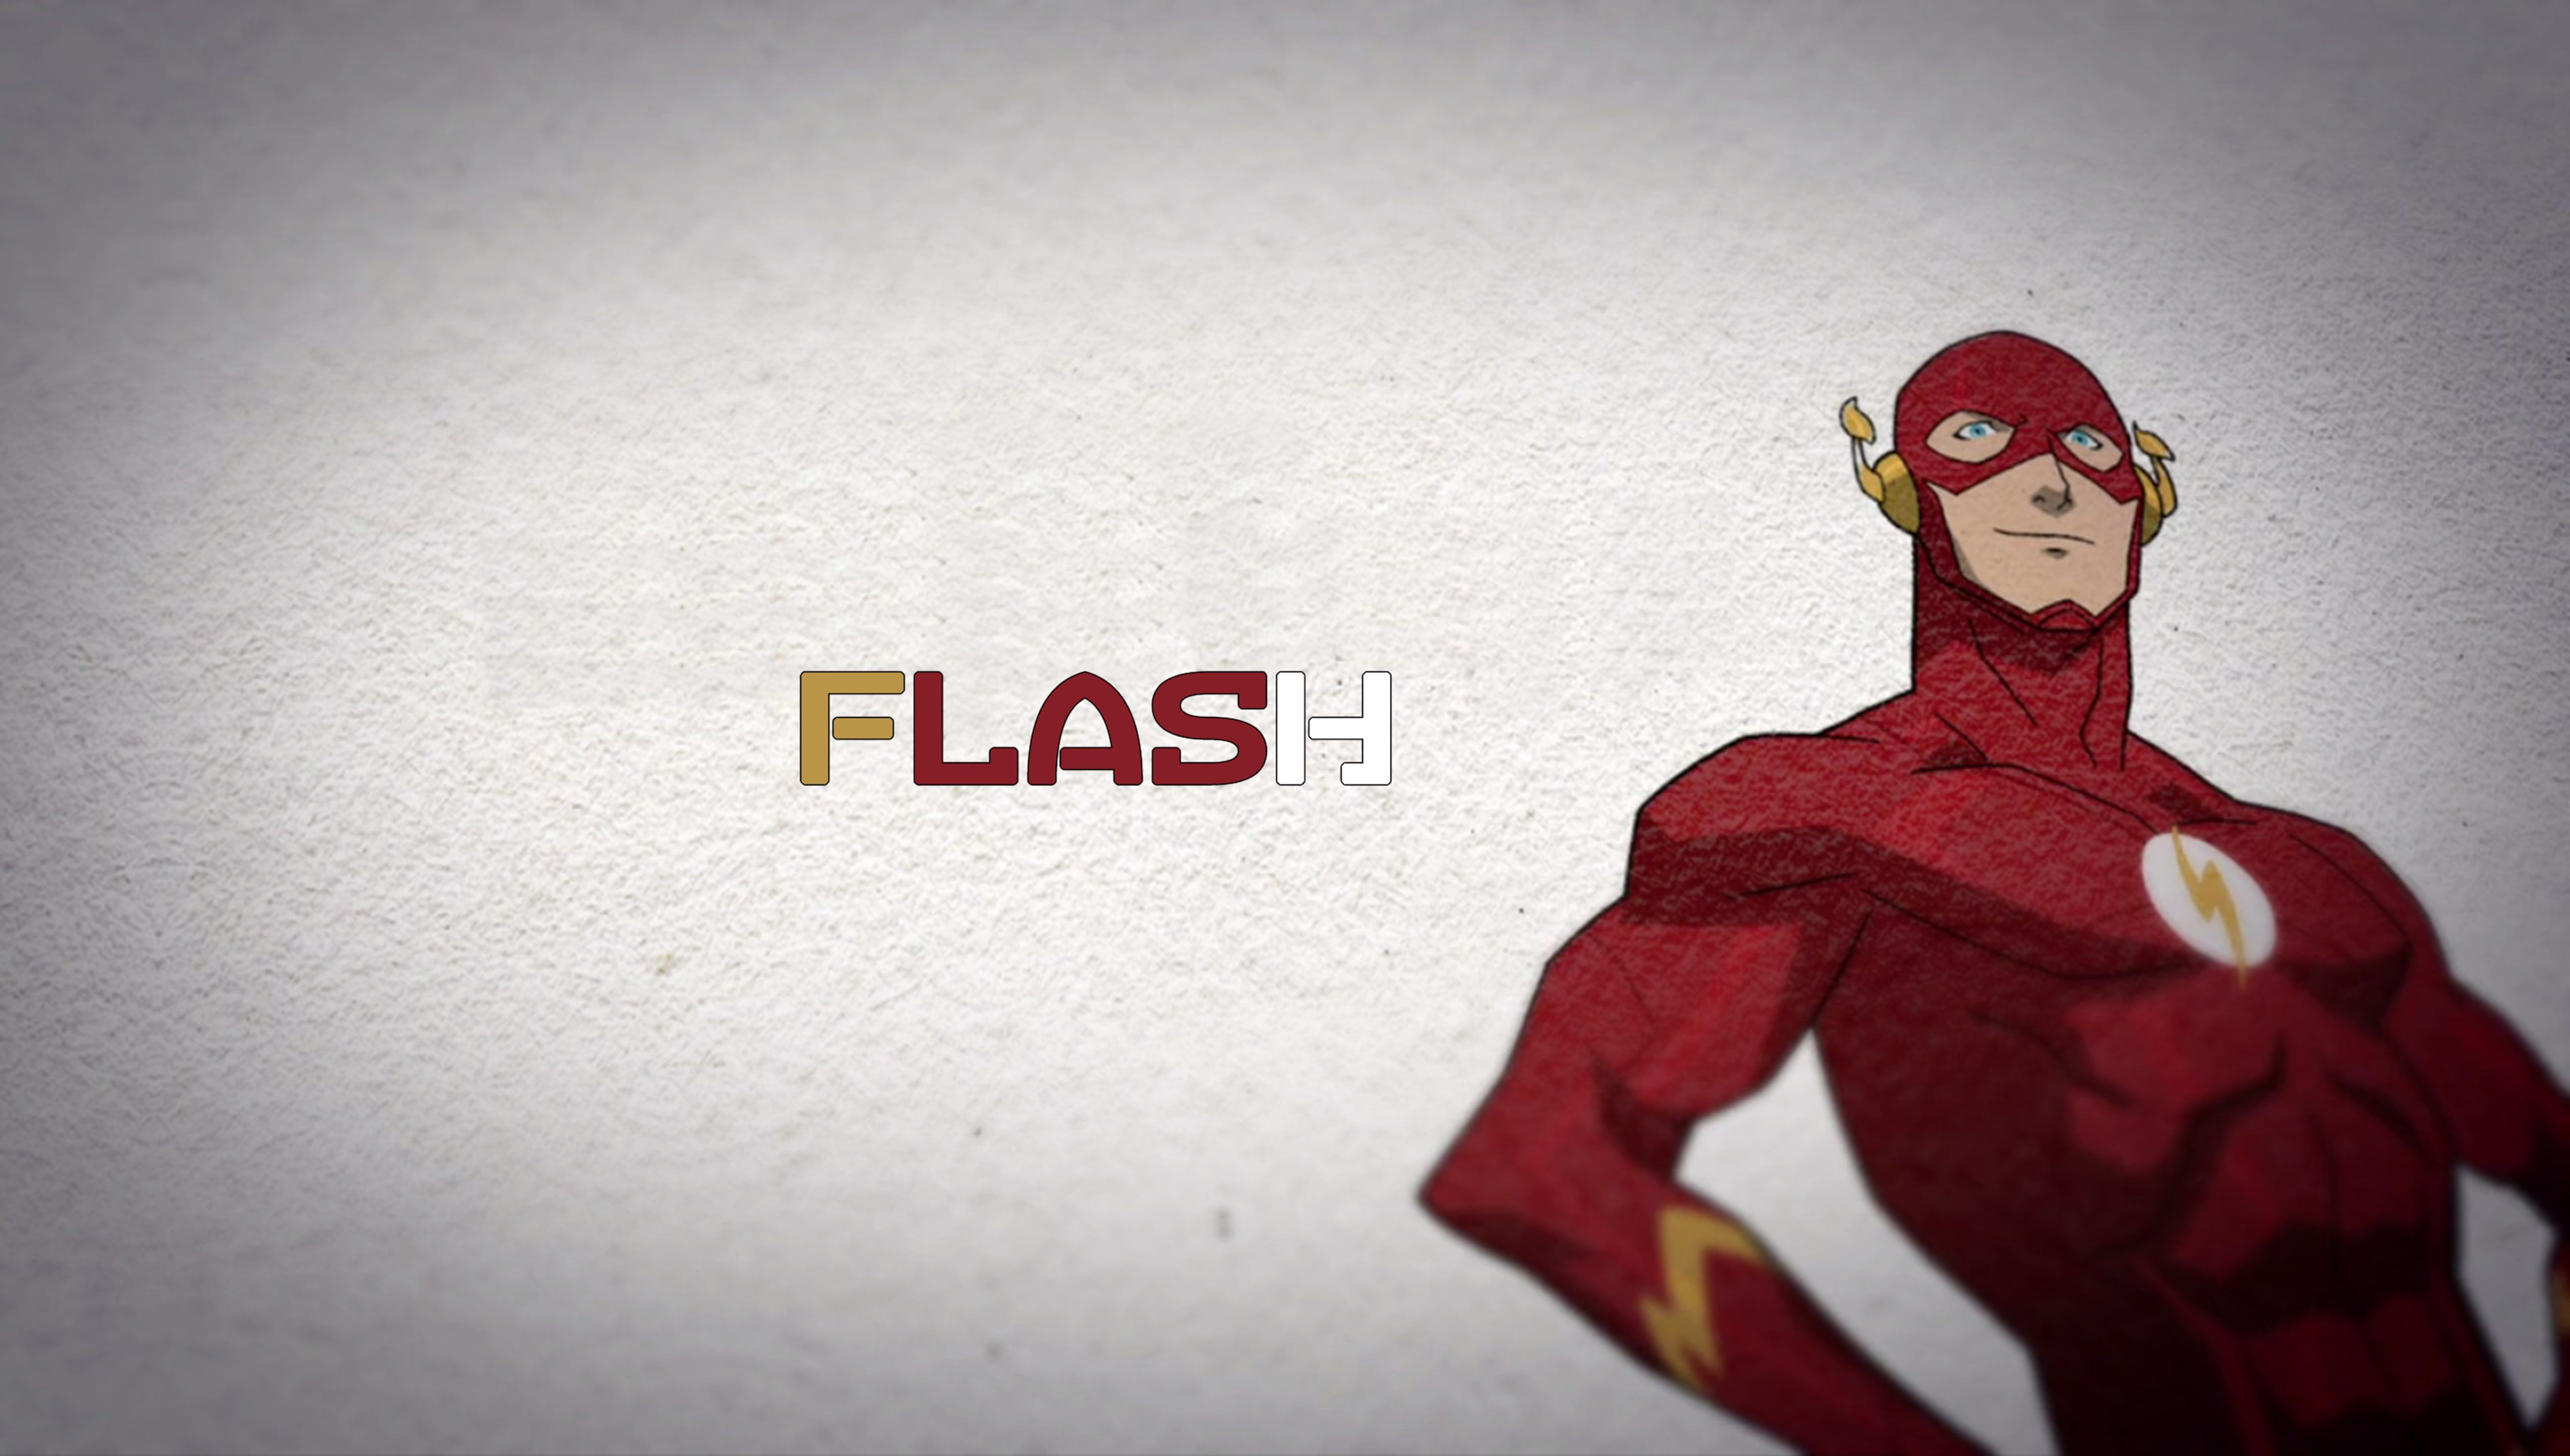 Flash Dc Comics Superheroes 5k Is An HD Desktop Wallpaper Posted In Our Free Image Collection Of Wallpapers